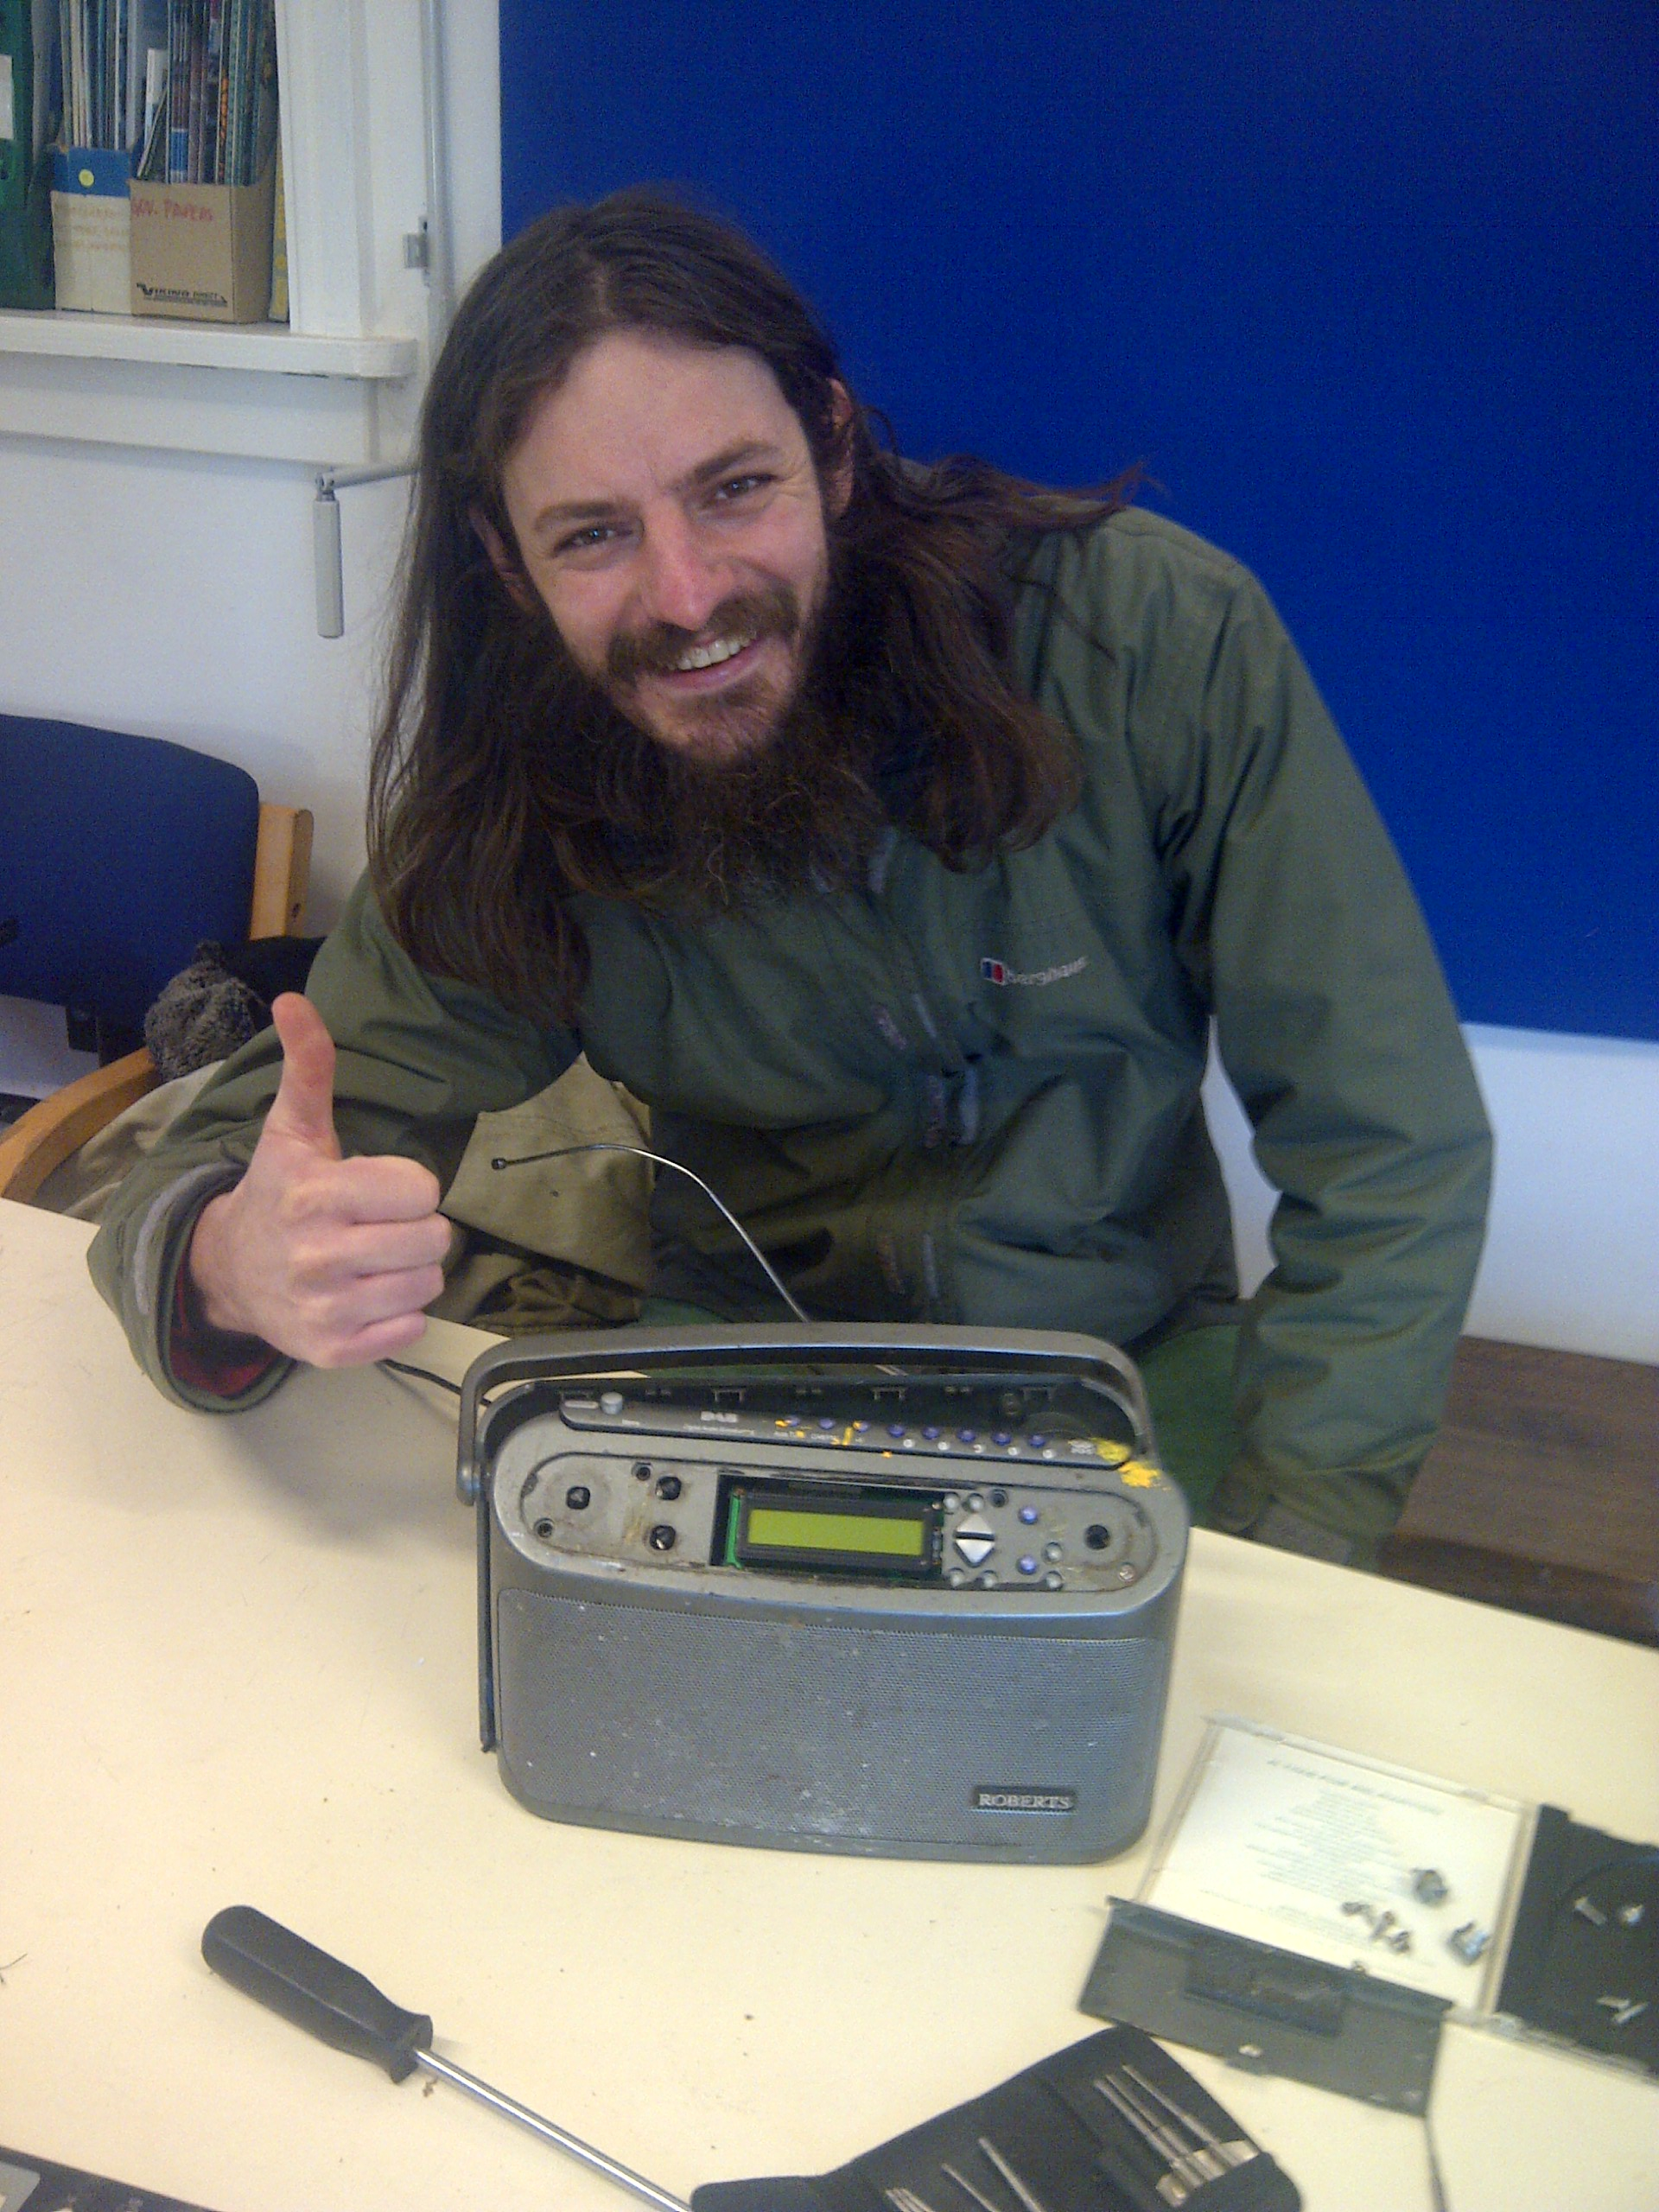 Another satisfied customer, after having his radio repaired.